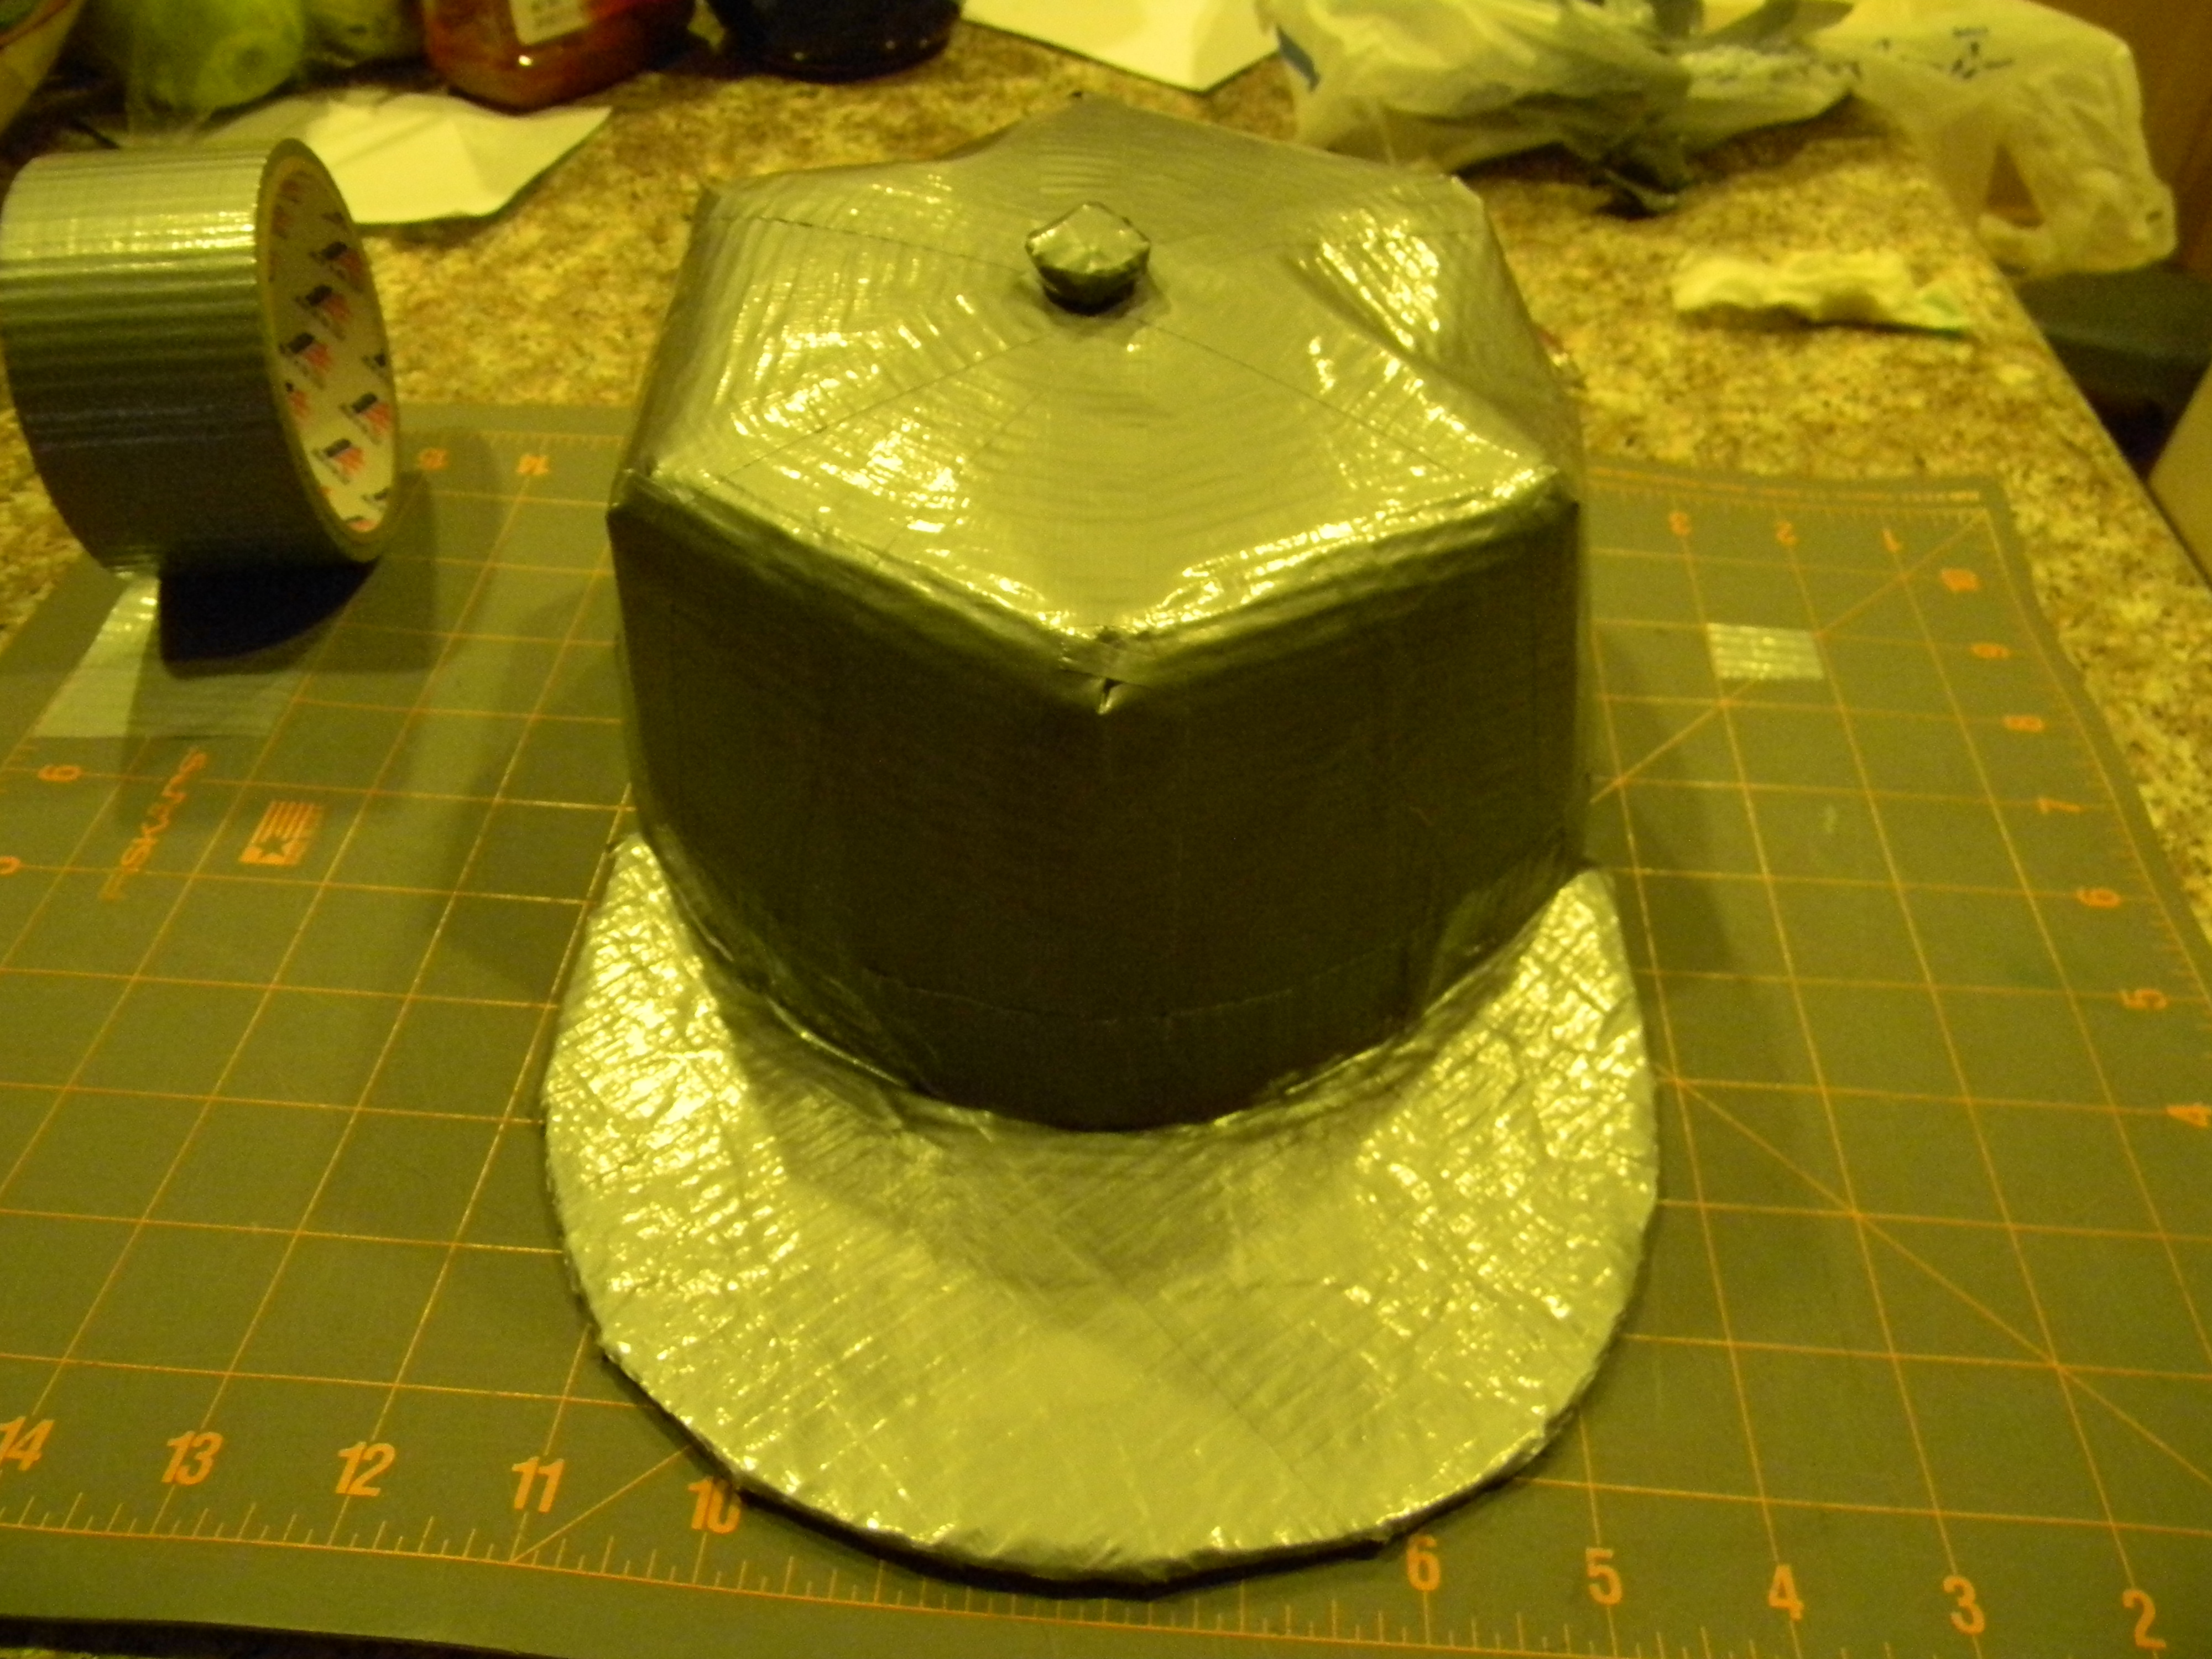 How to make a duct tape hat